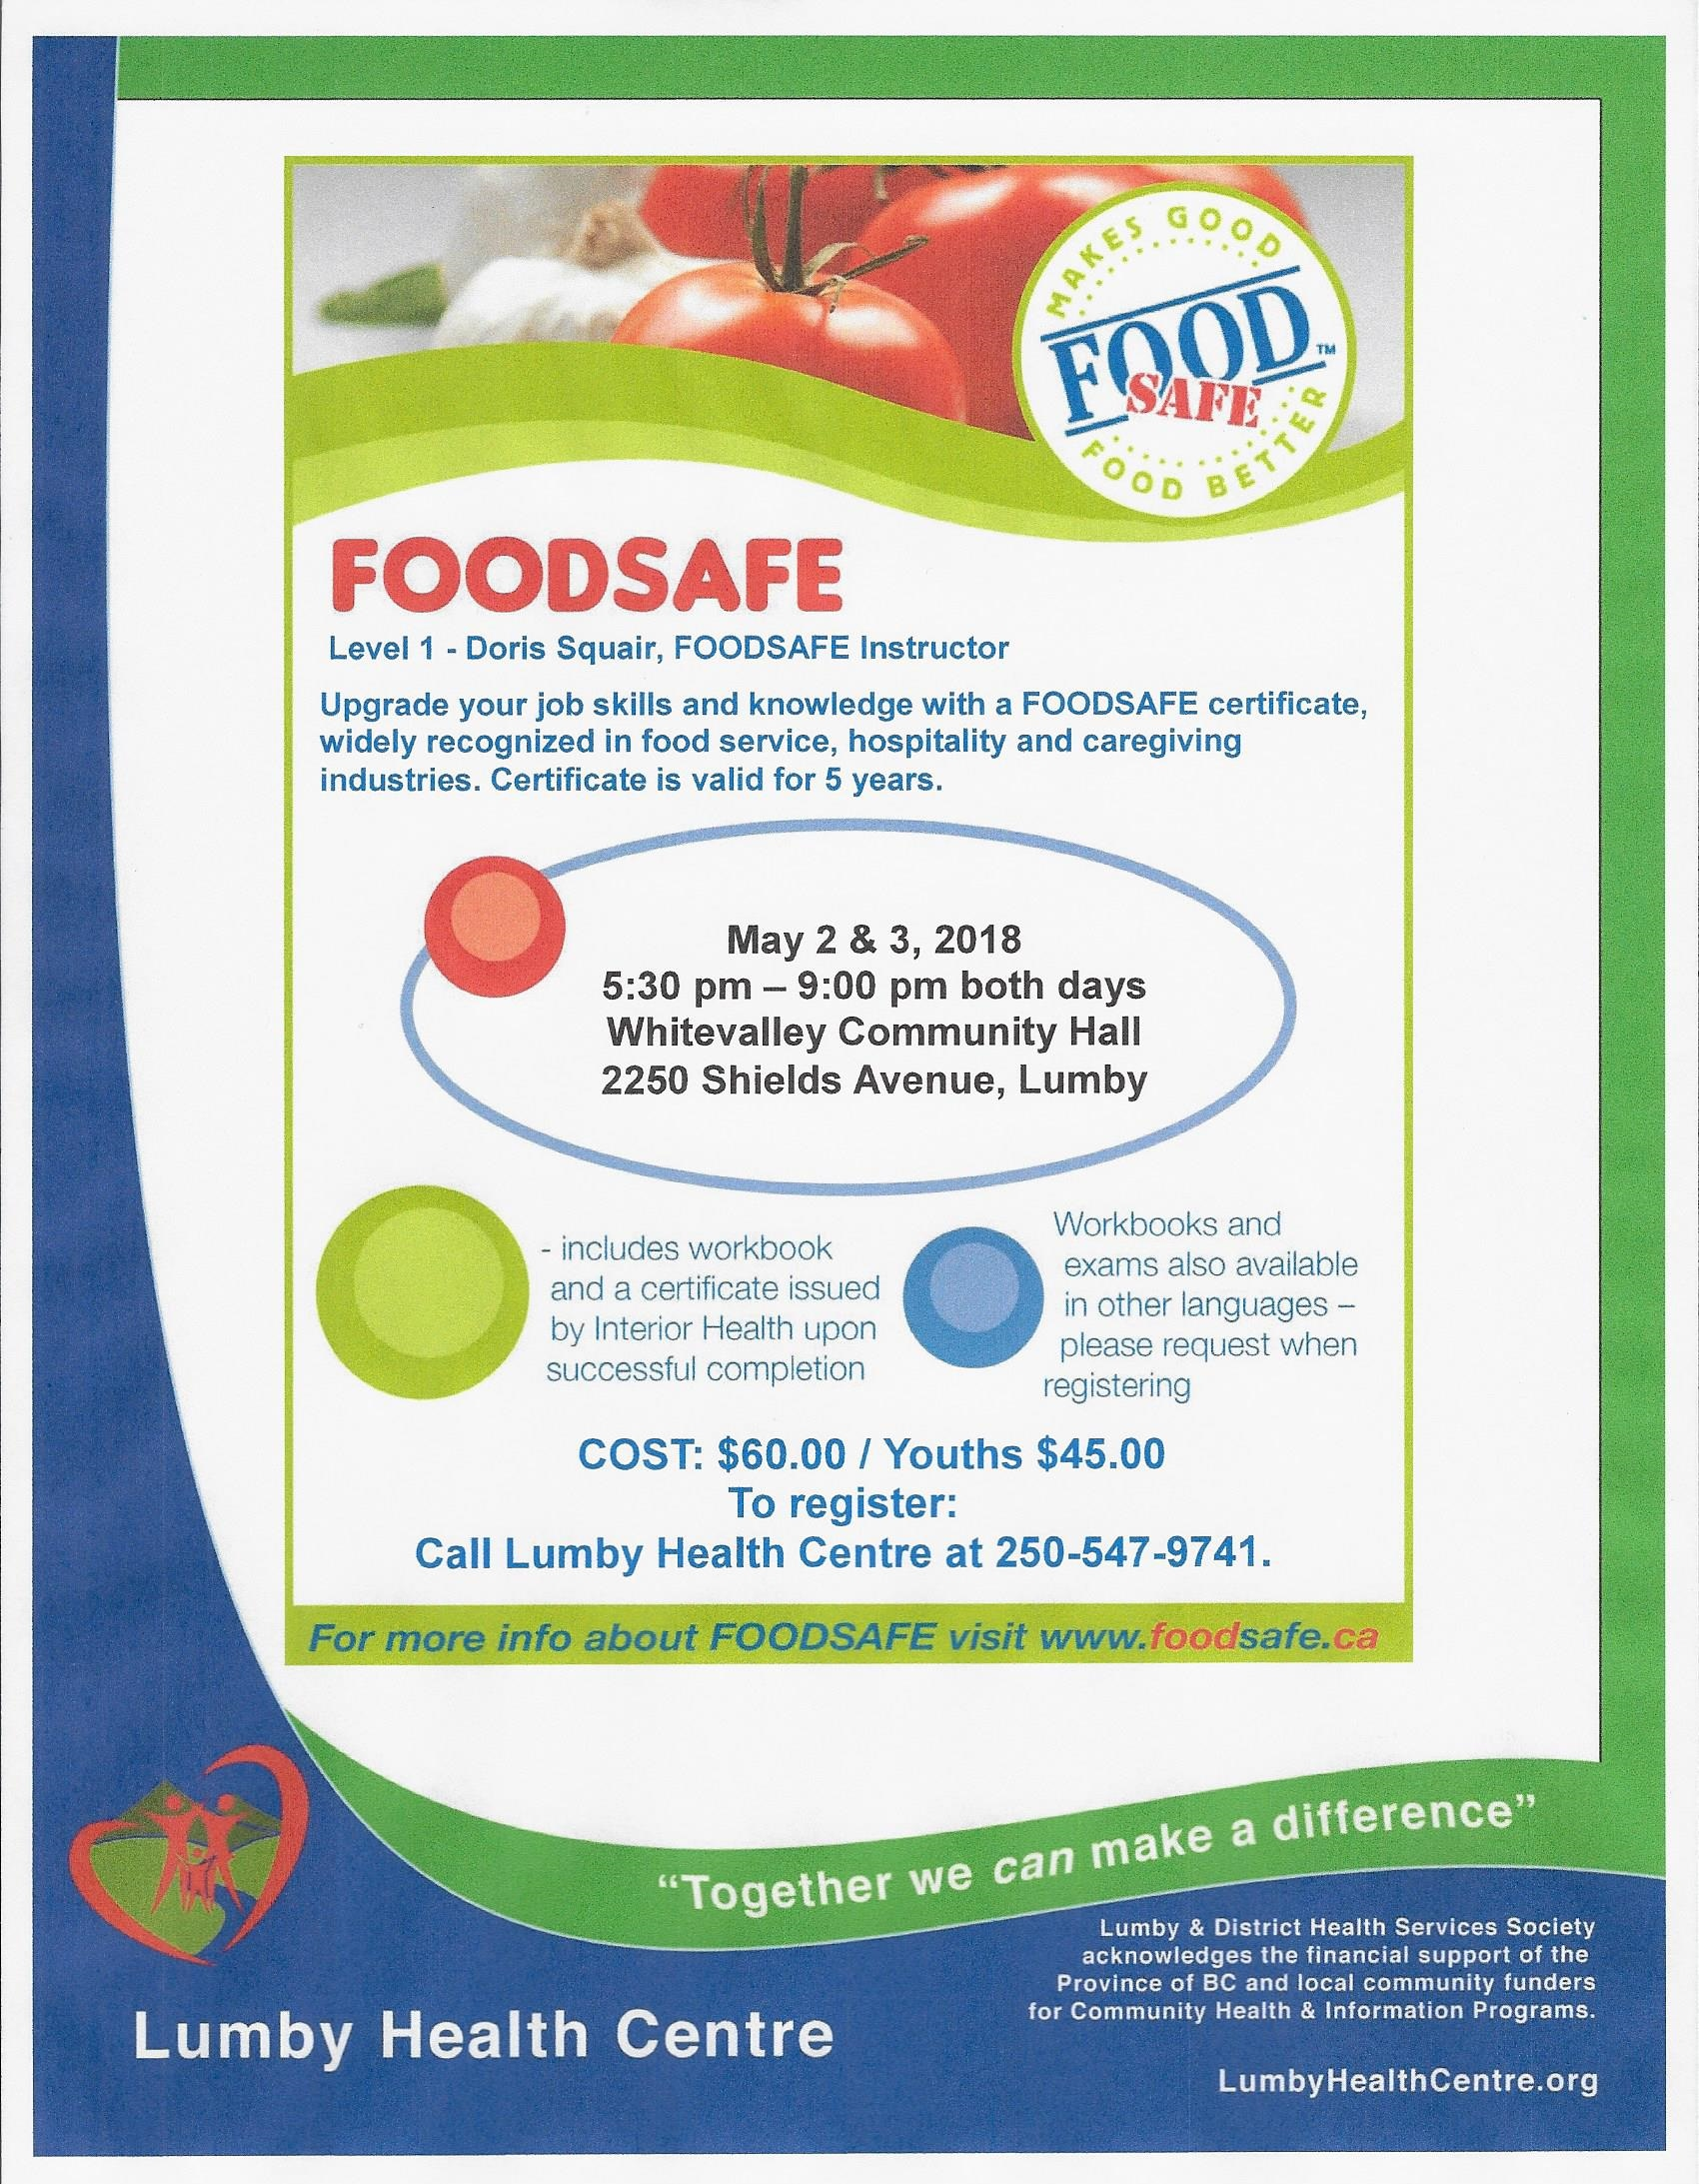 Food safe certification lumbyhealthcentre upgrade your job skills and knowledge with a foodsafe certificate widely recognized in food service hospitality and caregiving industries 1betcityfo Gallery